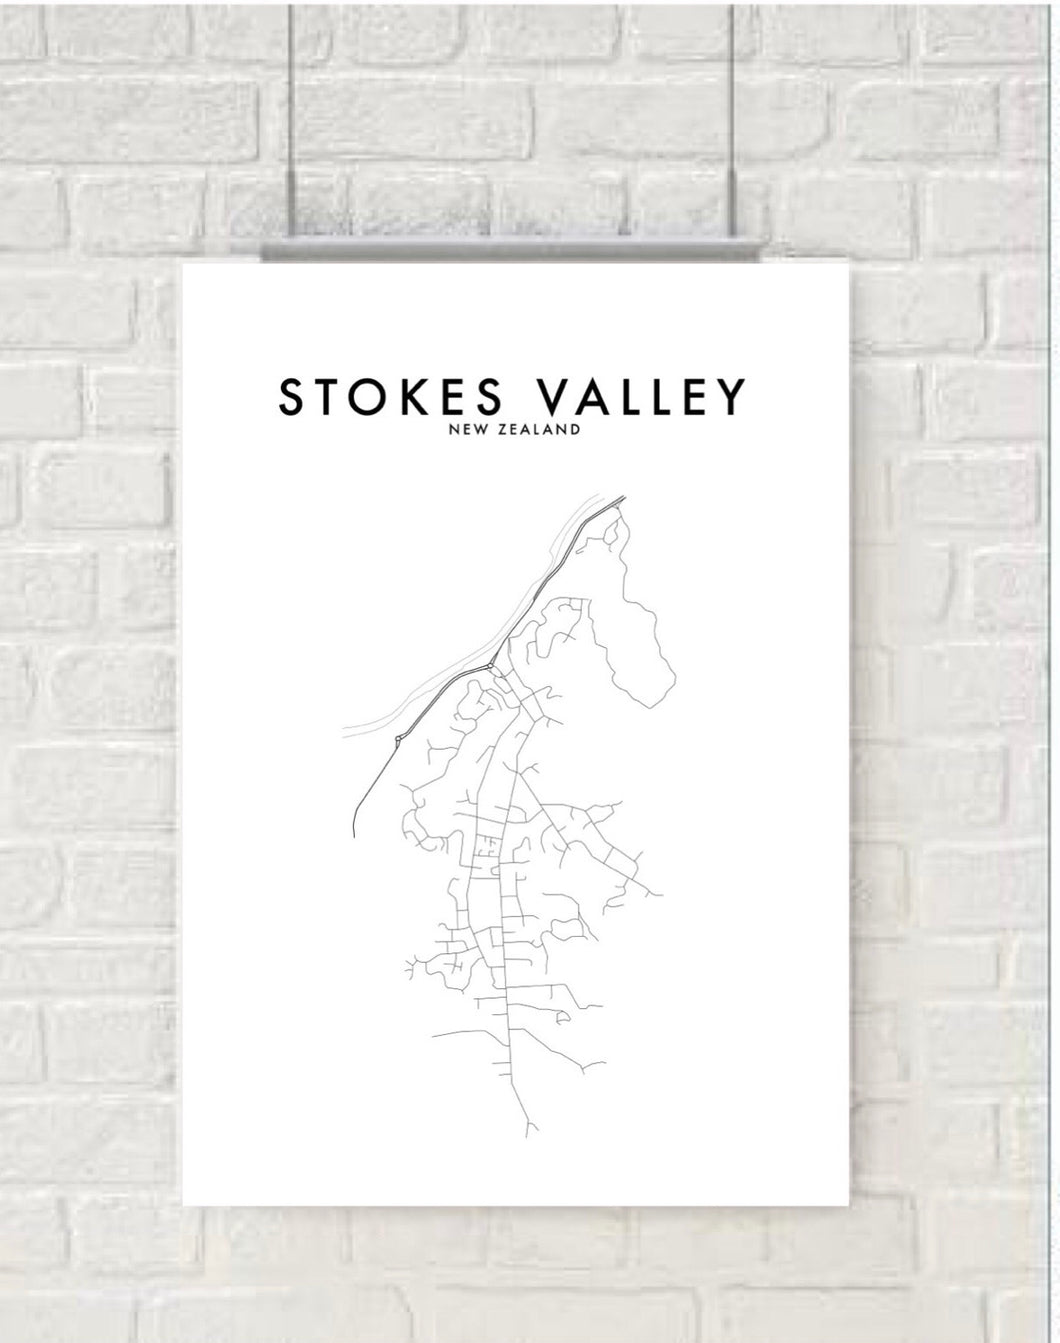 STOKES VALLEY HOMETOWN PRINT